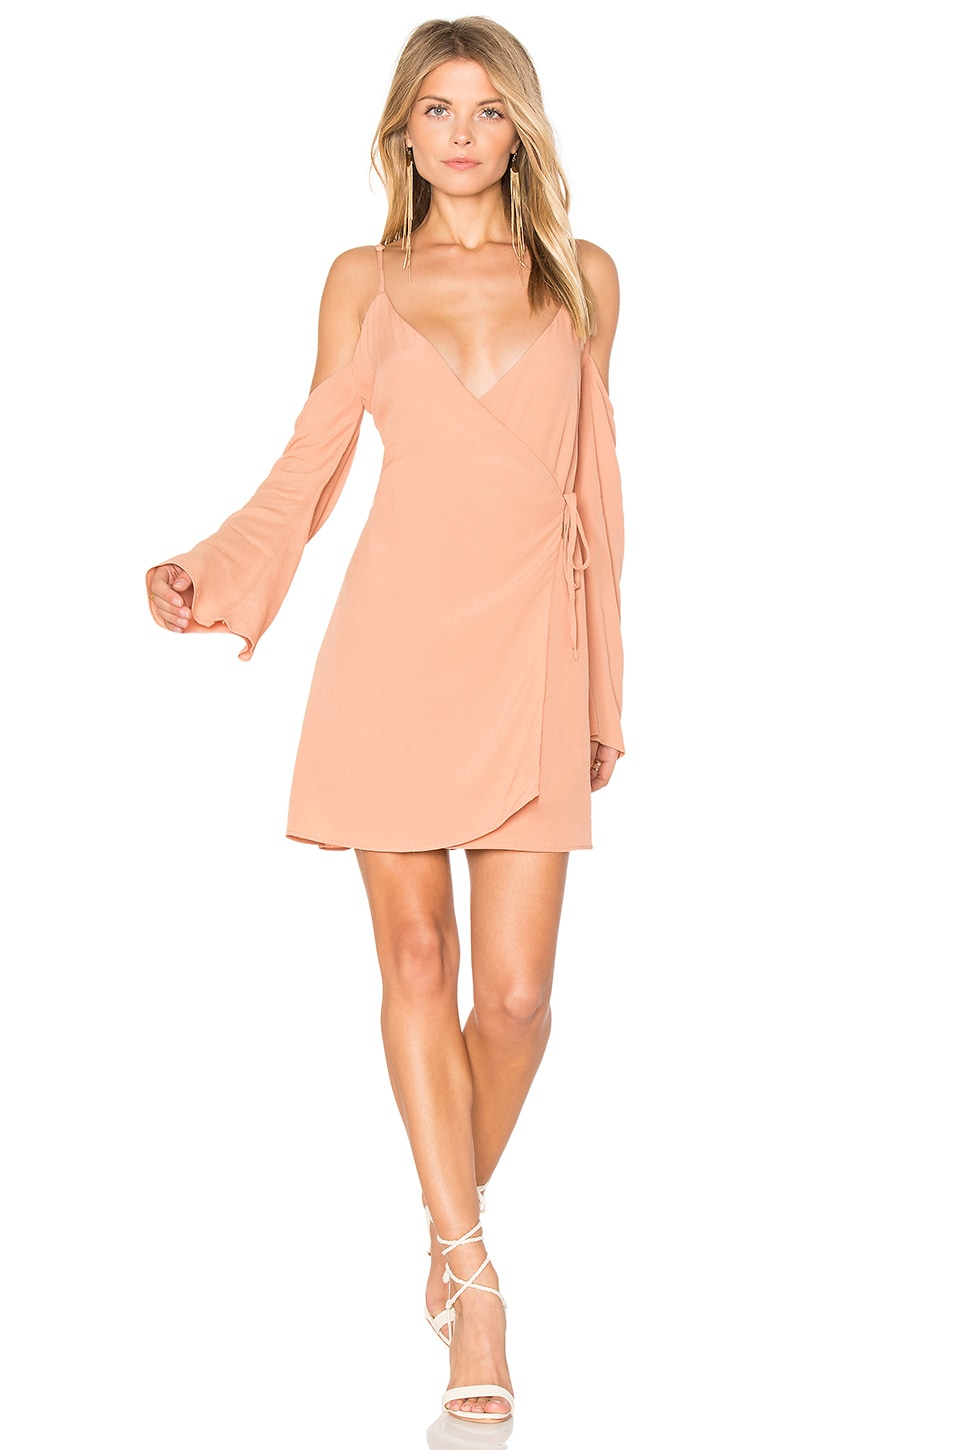 Lovers + Friends Love Letter Dress in Tan